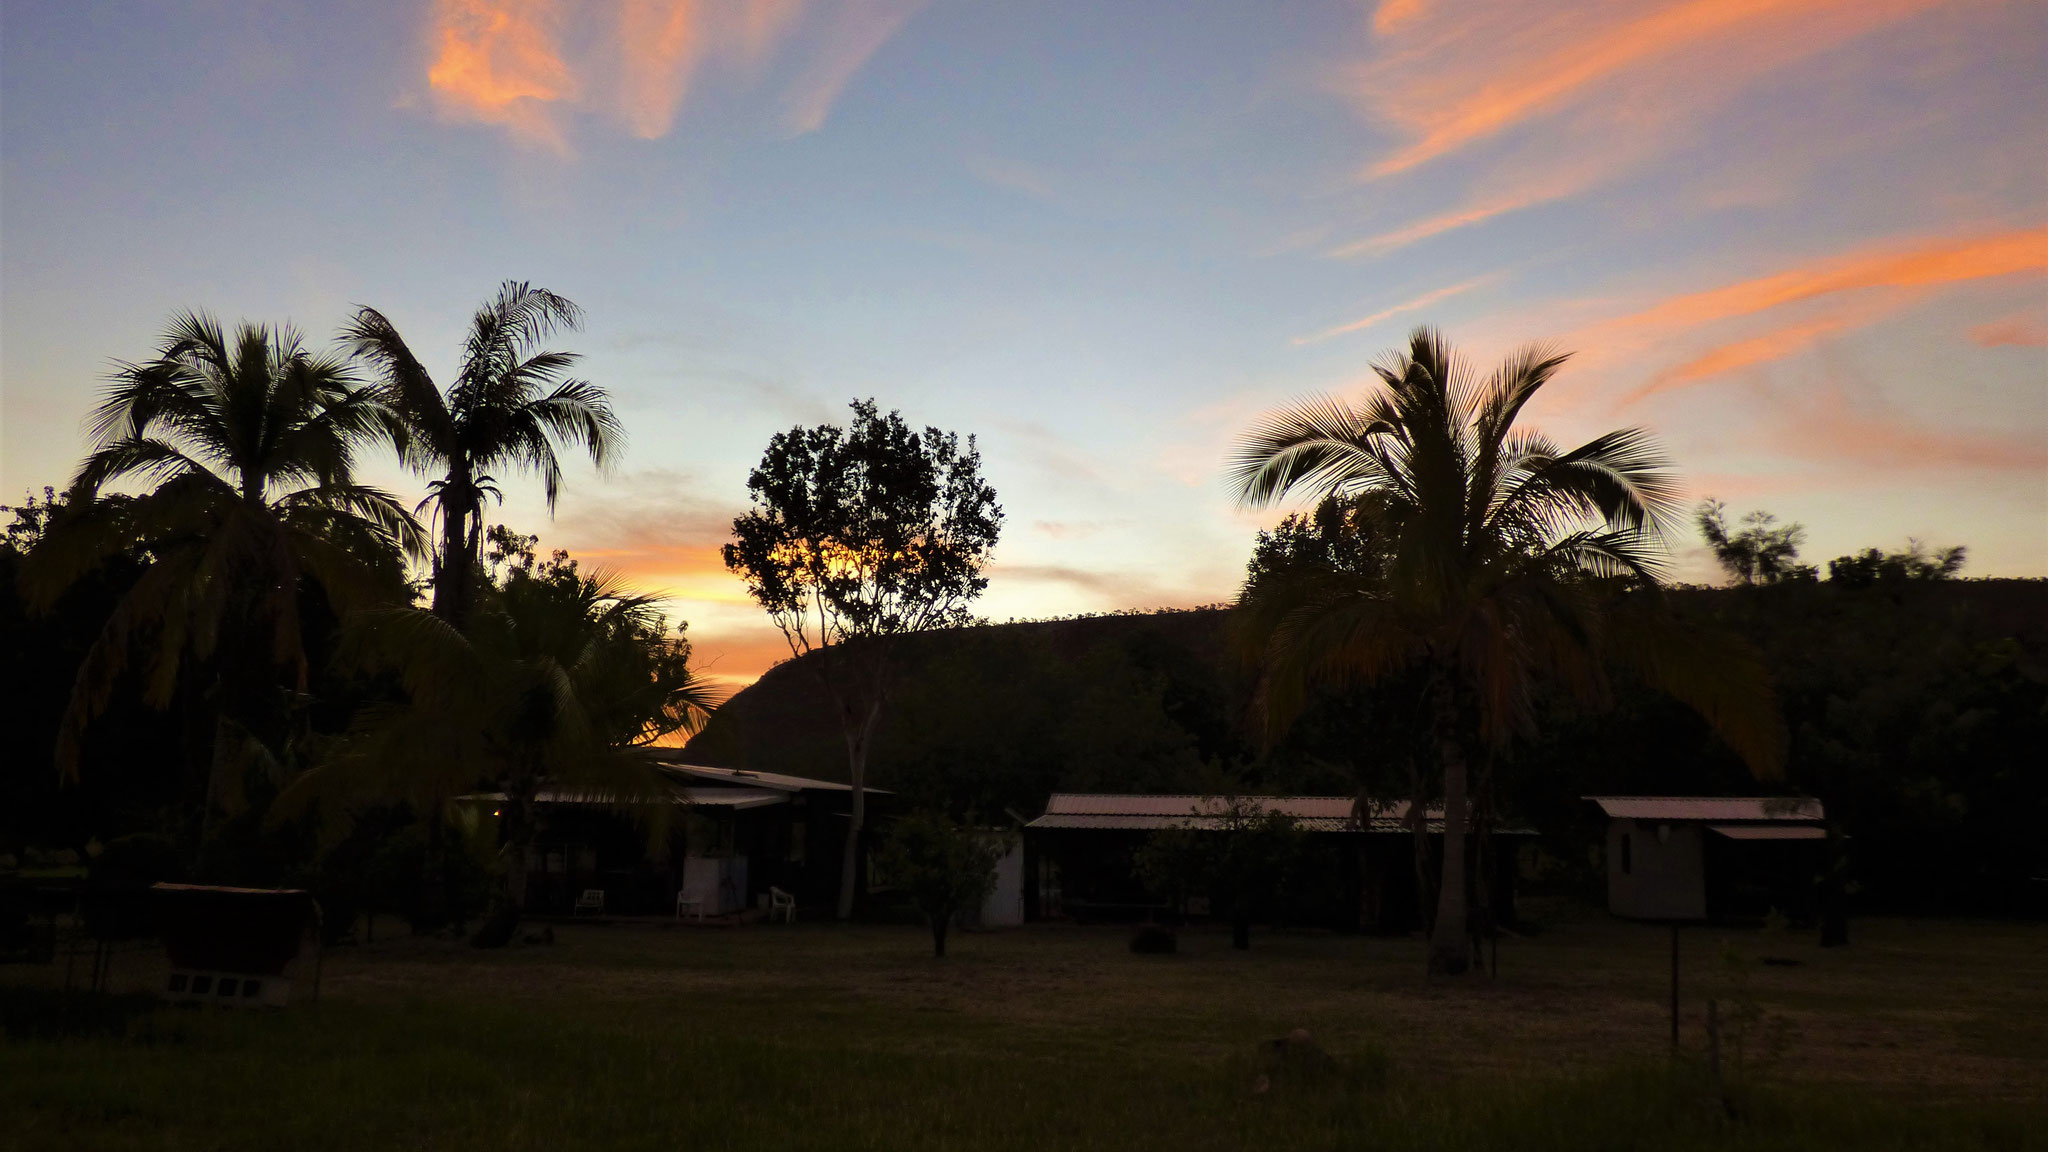 Dusk at the camp